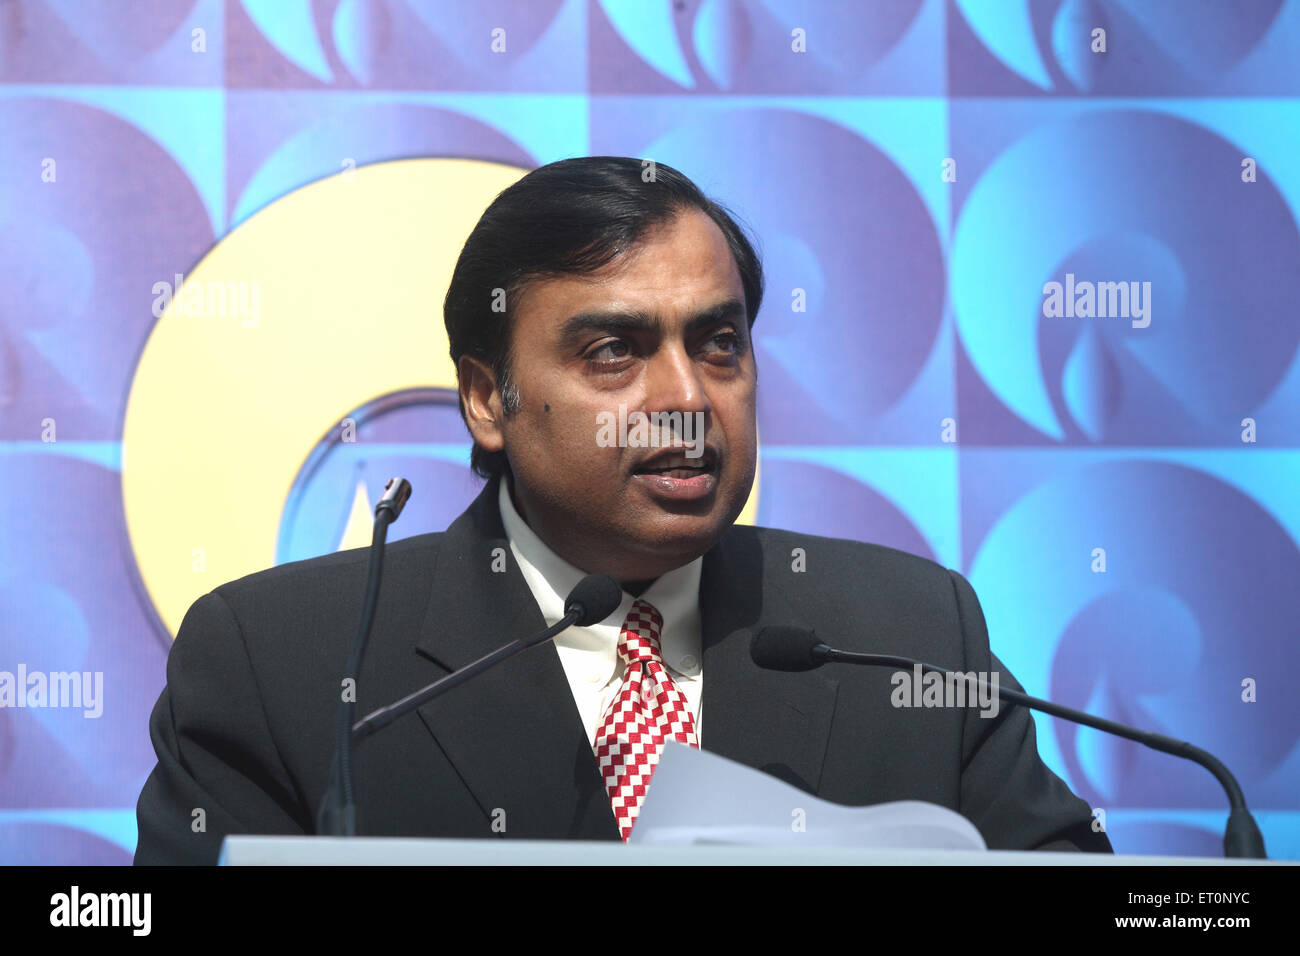 Mukesh Ambani Chairman and Managing Director of Reliance Industries Limited - mpd 172545 - Stock Image